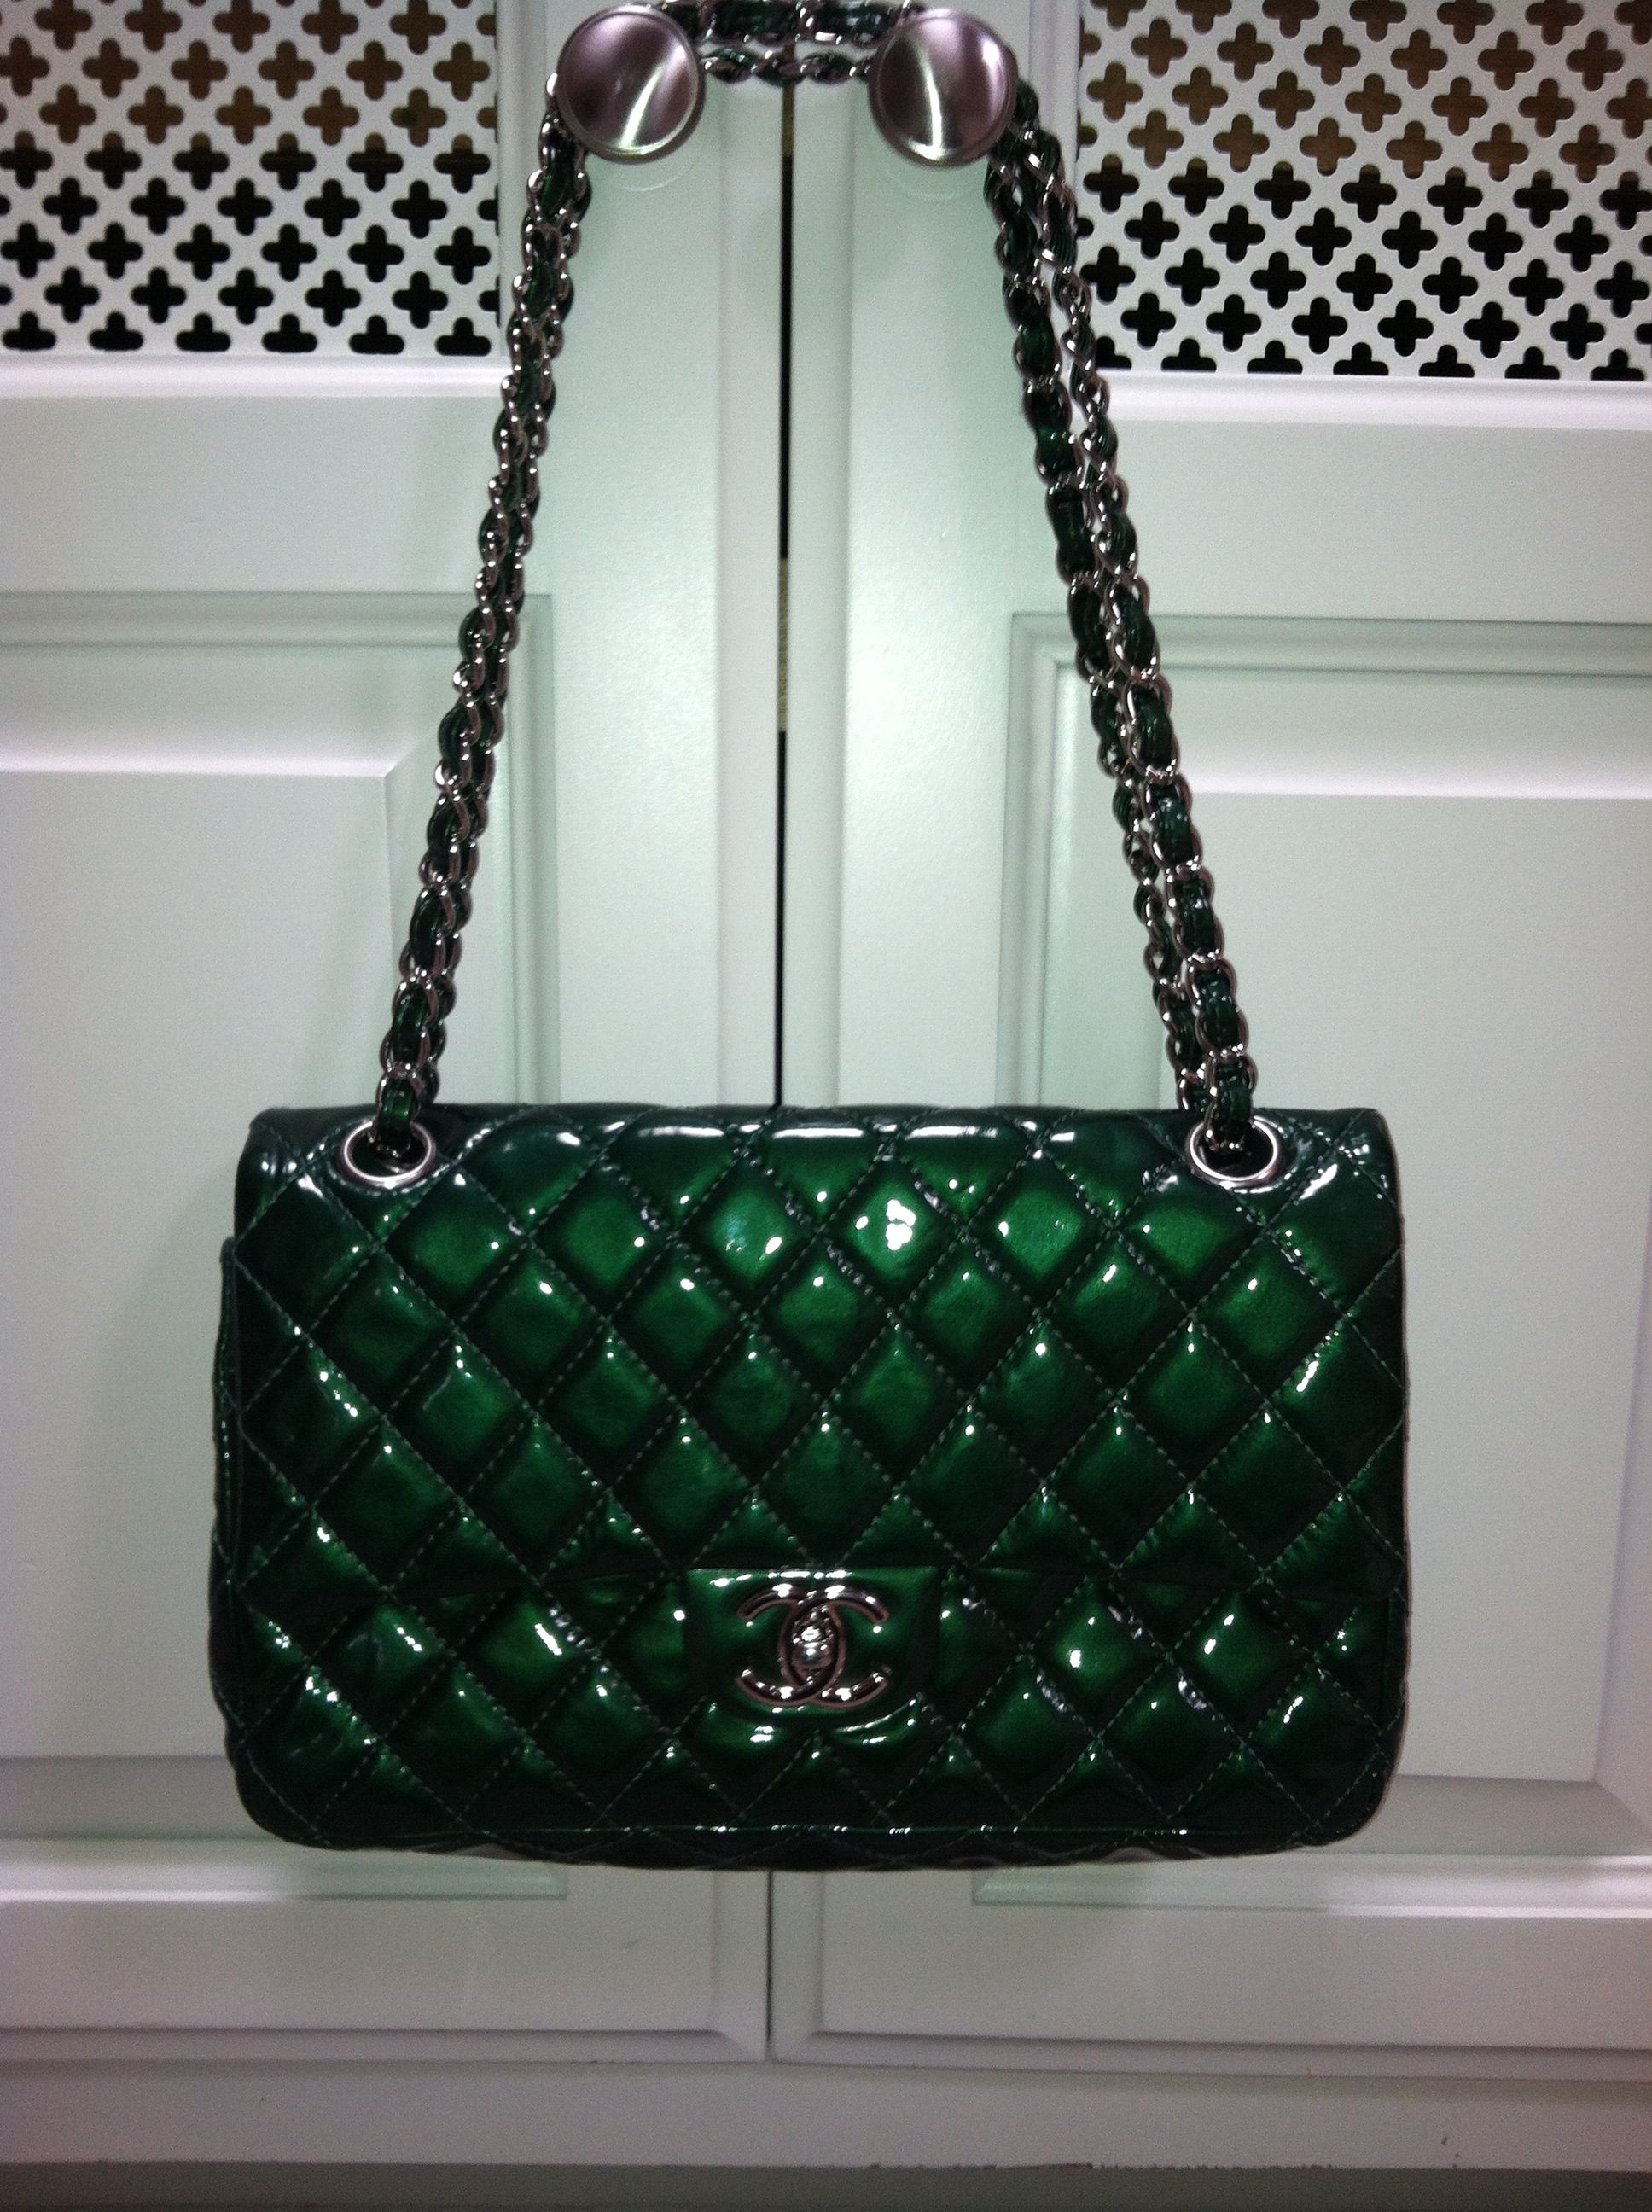 293096d0faf6 Limited Edition Chanel Bag Green Cheap Michael Kors Purses, Michael Kors  Sale, Michael Kors